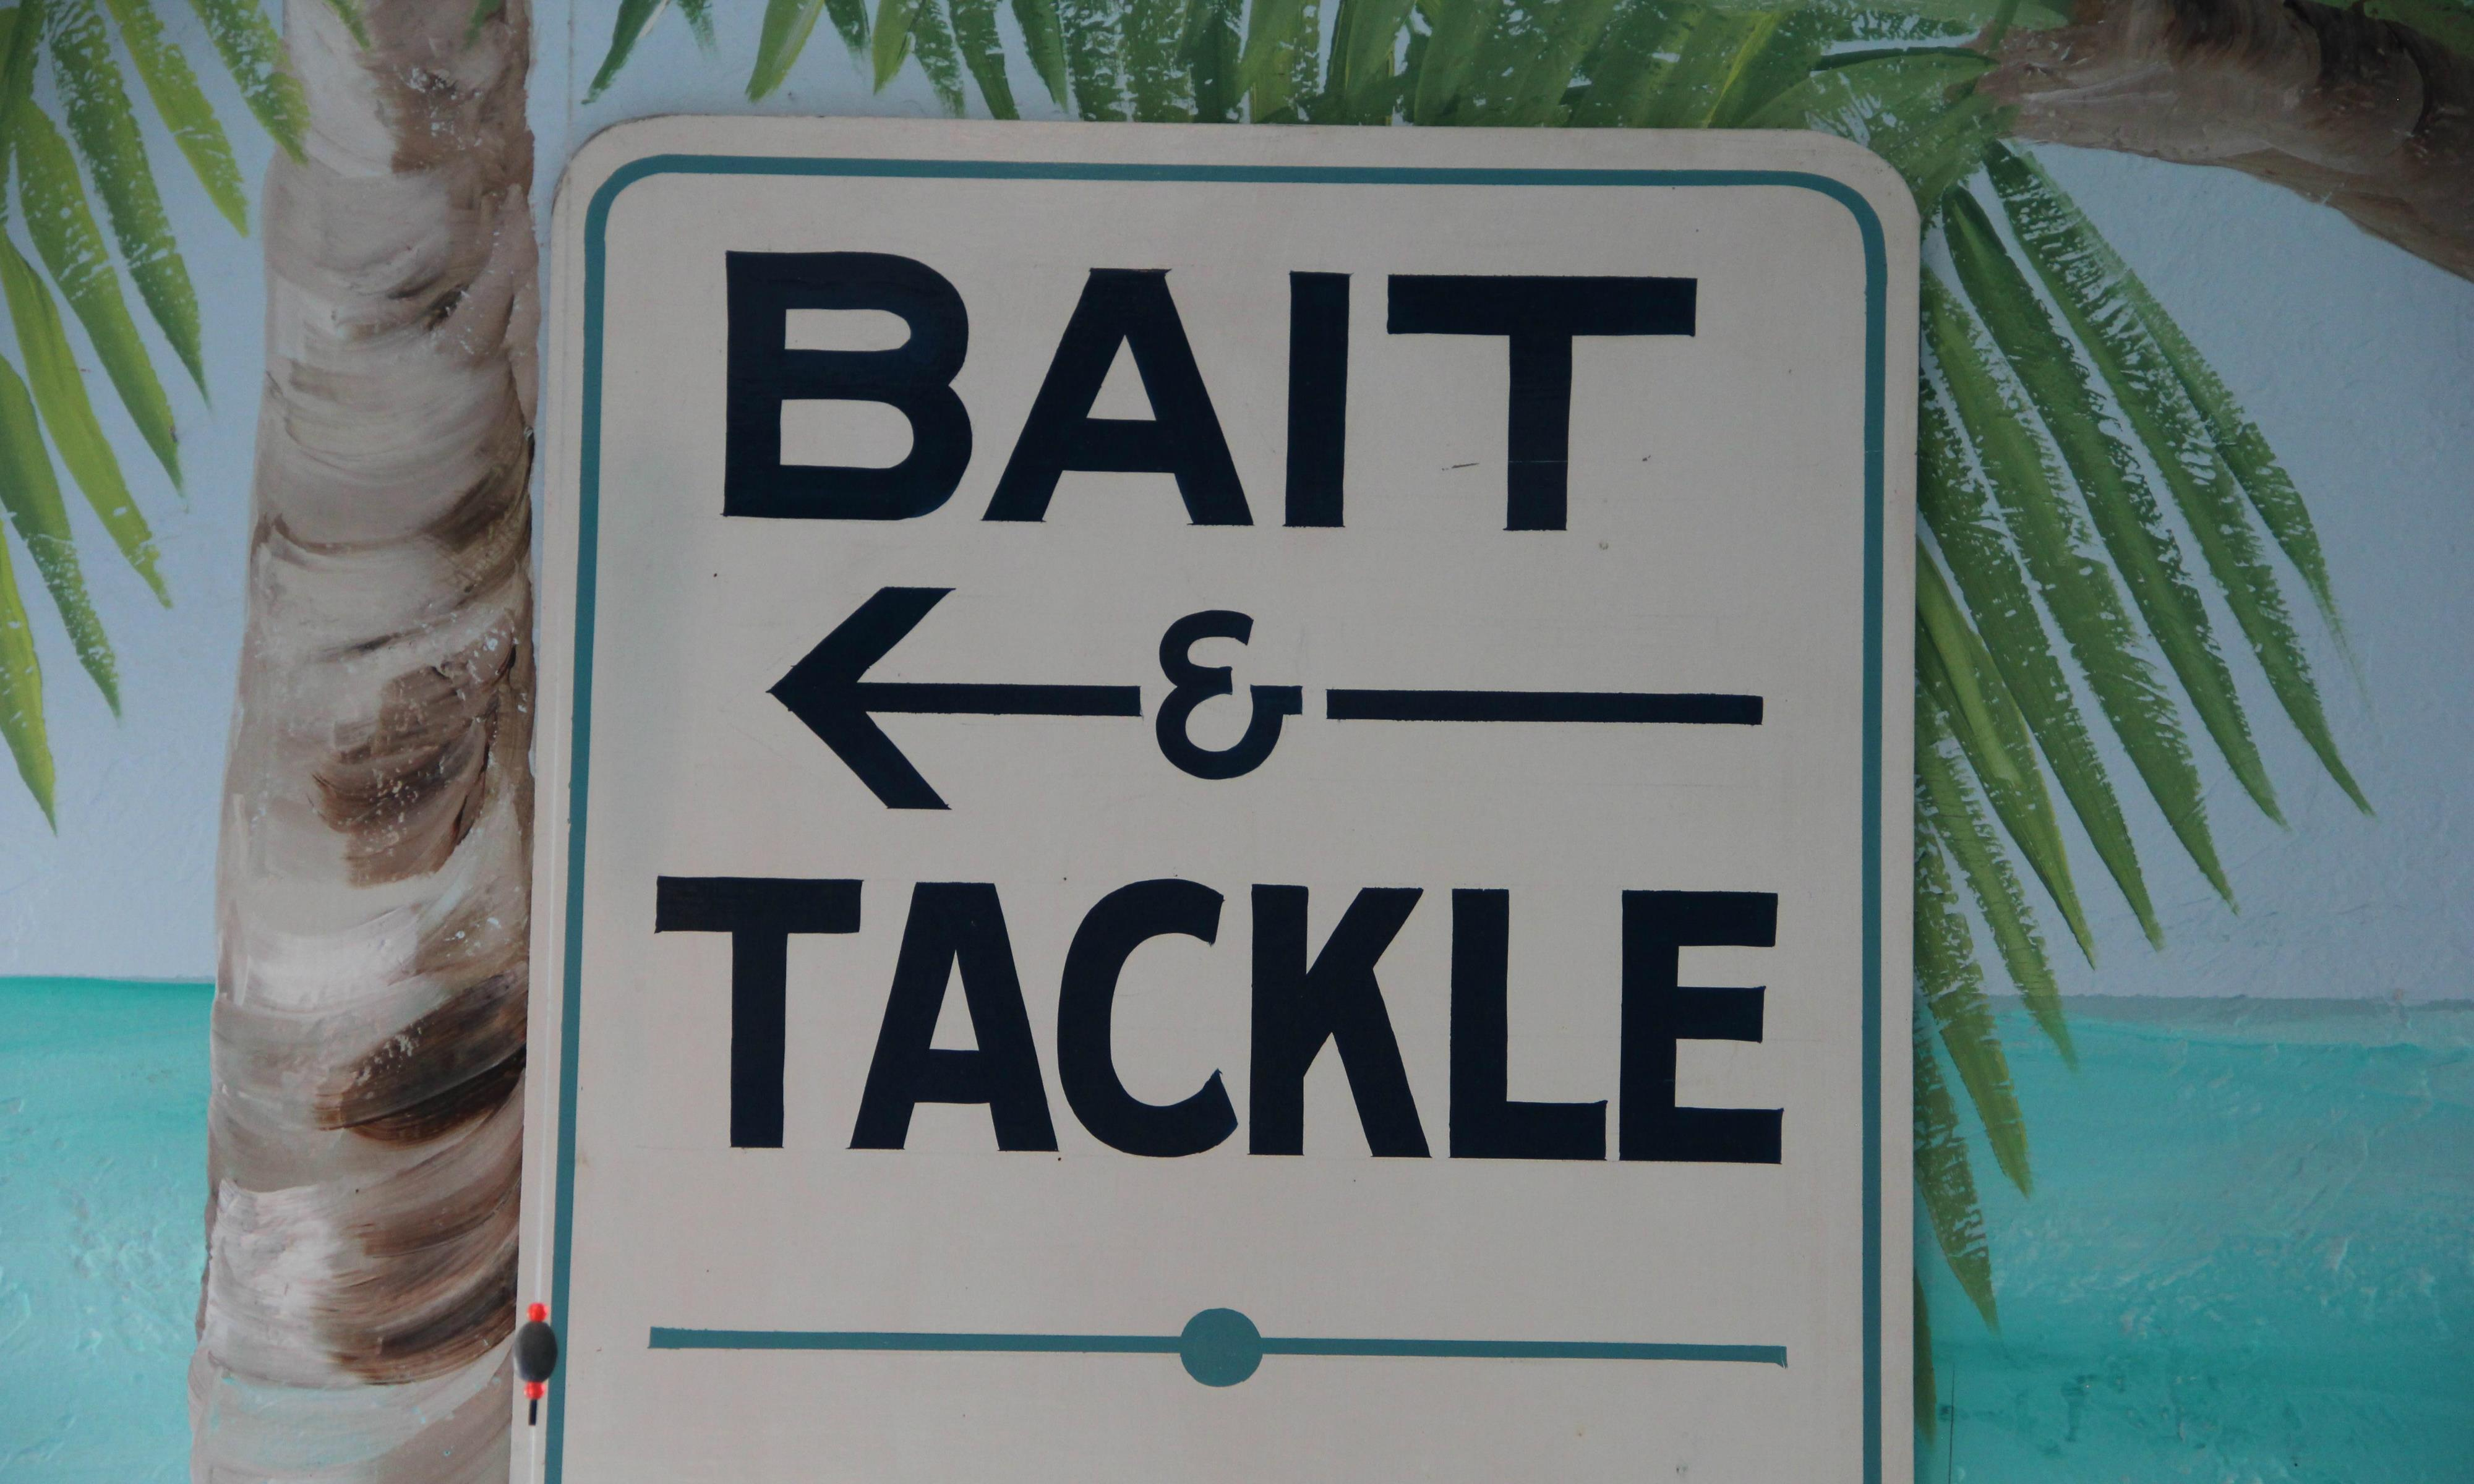 bait and tackle.jpg